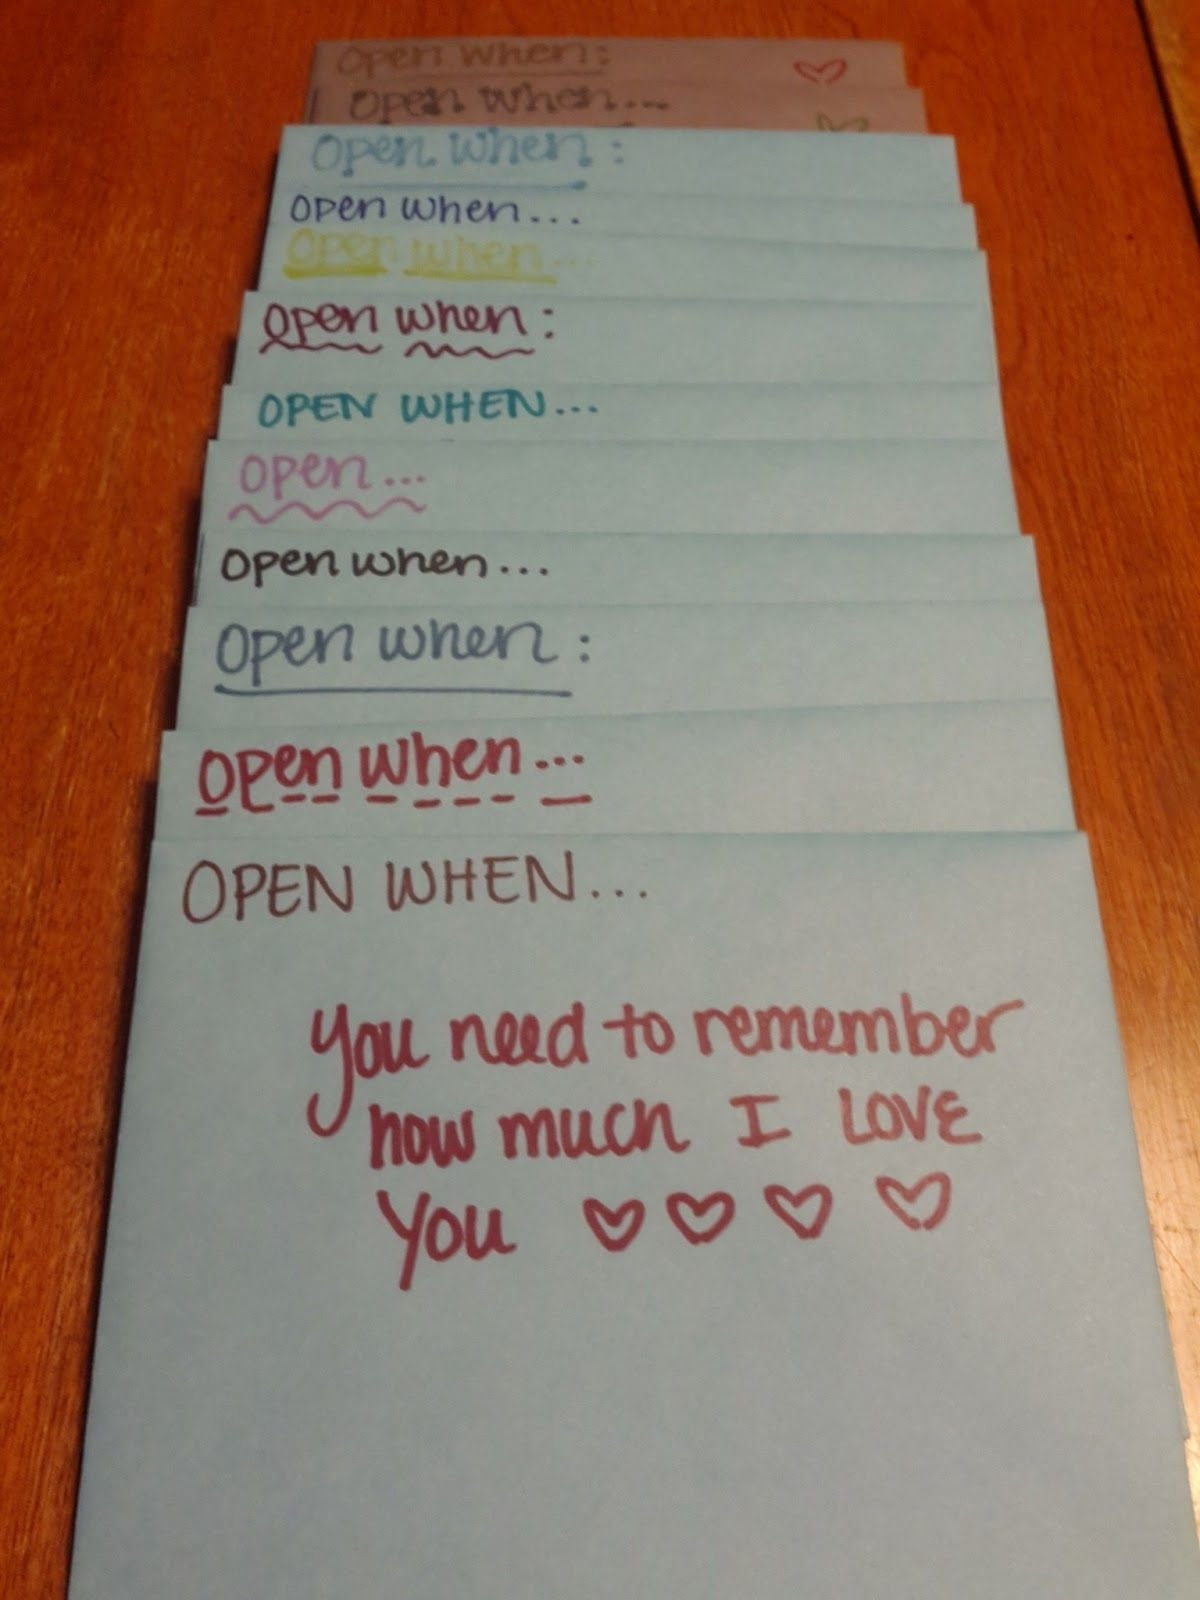 10 Nice One Month Anniversary Ideas For Him life love lauren the paper gift you would really have to plan 1 2021